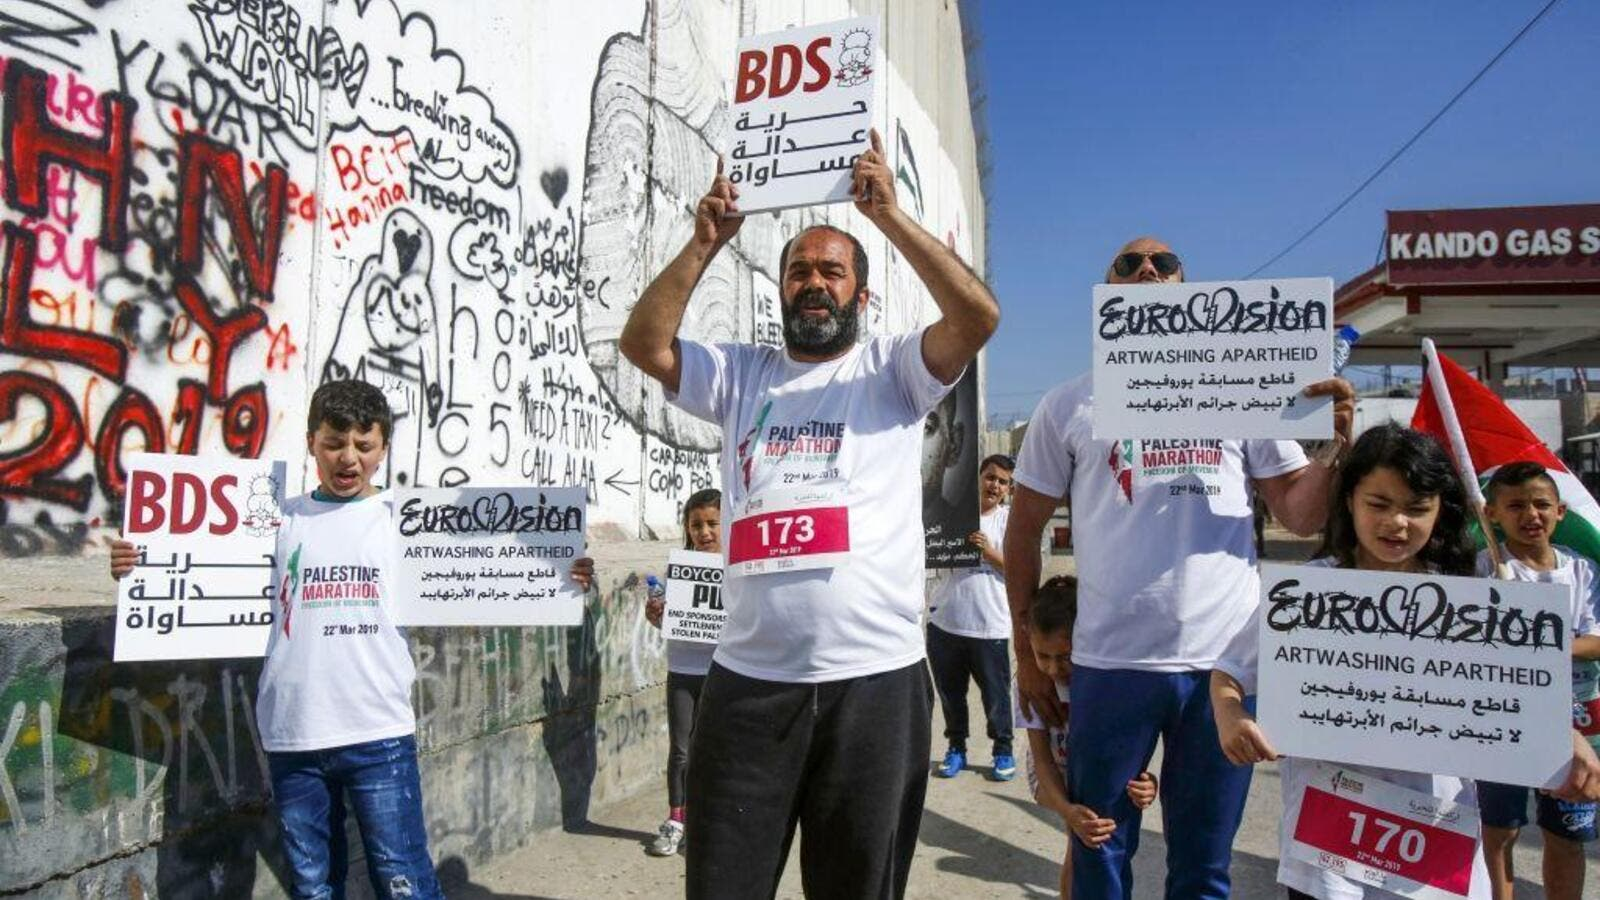 Activists hold banners calling for the boycott of Eurovision in the biblical town of Bethlehem in the occupied West Bank on 22 March 2019 [Musa AL ShaerAFP]